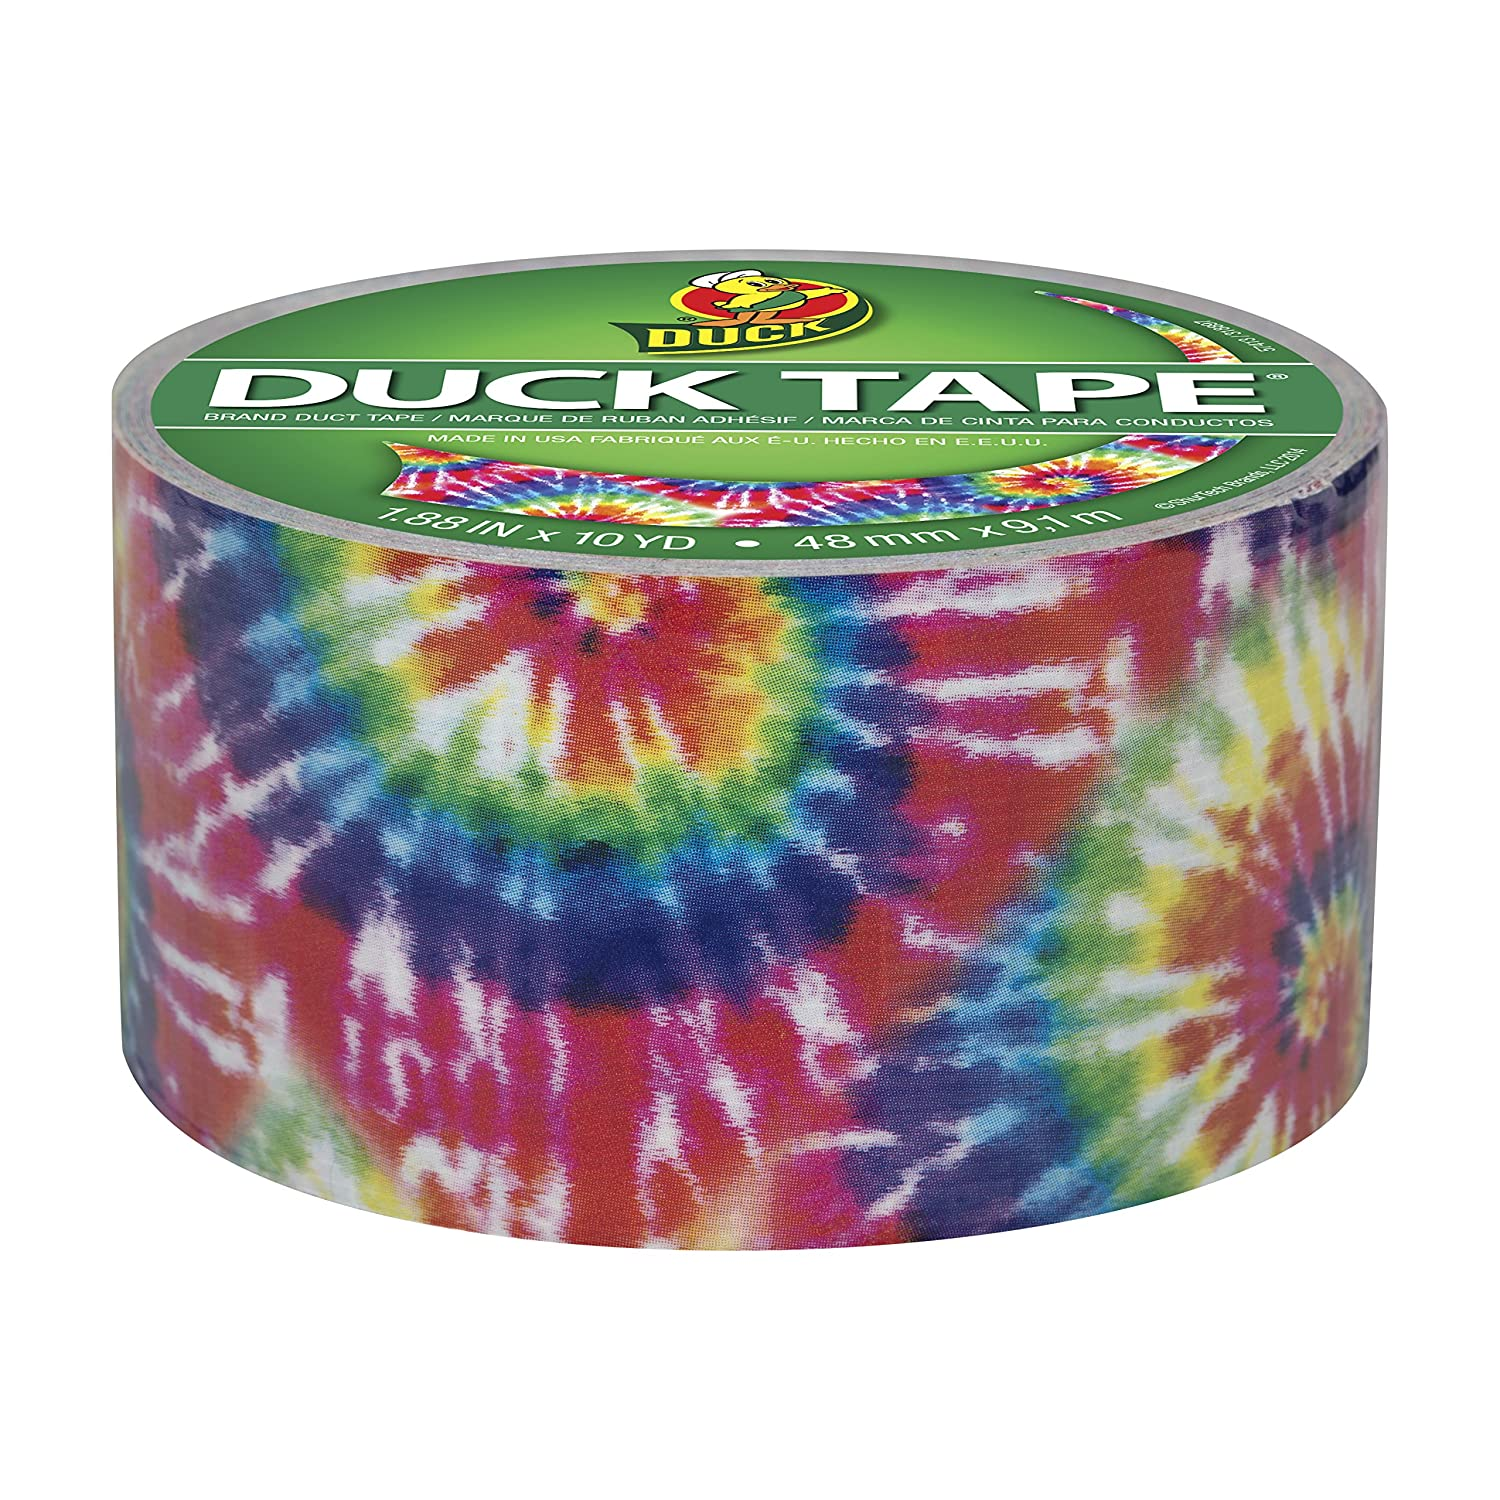 Glues, Epoxies & Cements Adhesives, Sealants & Tapes Duck 283268 Colored Duct Tape Love Tie Dye To Adopt Advanced Technology